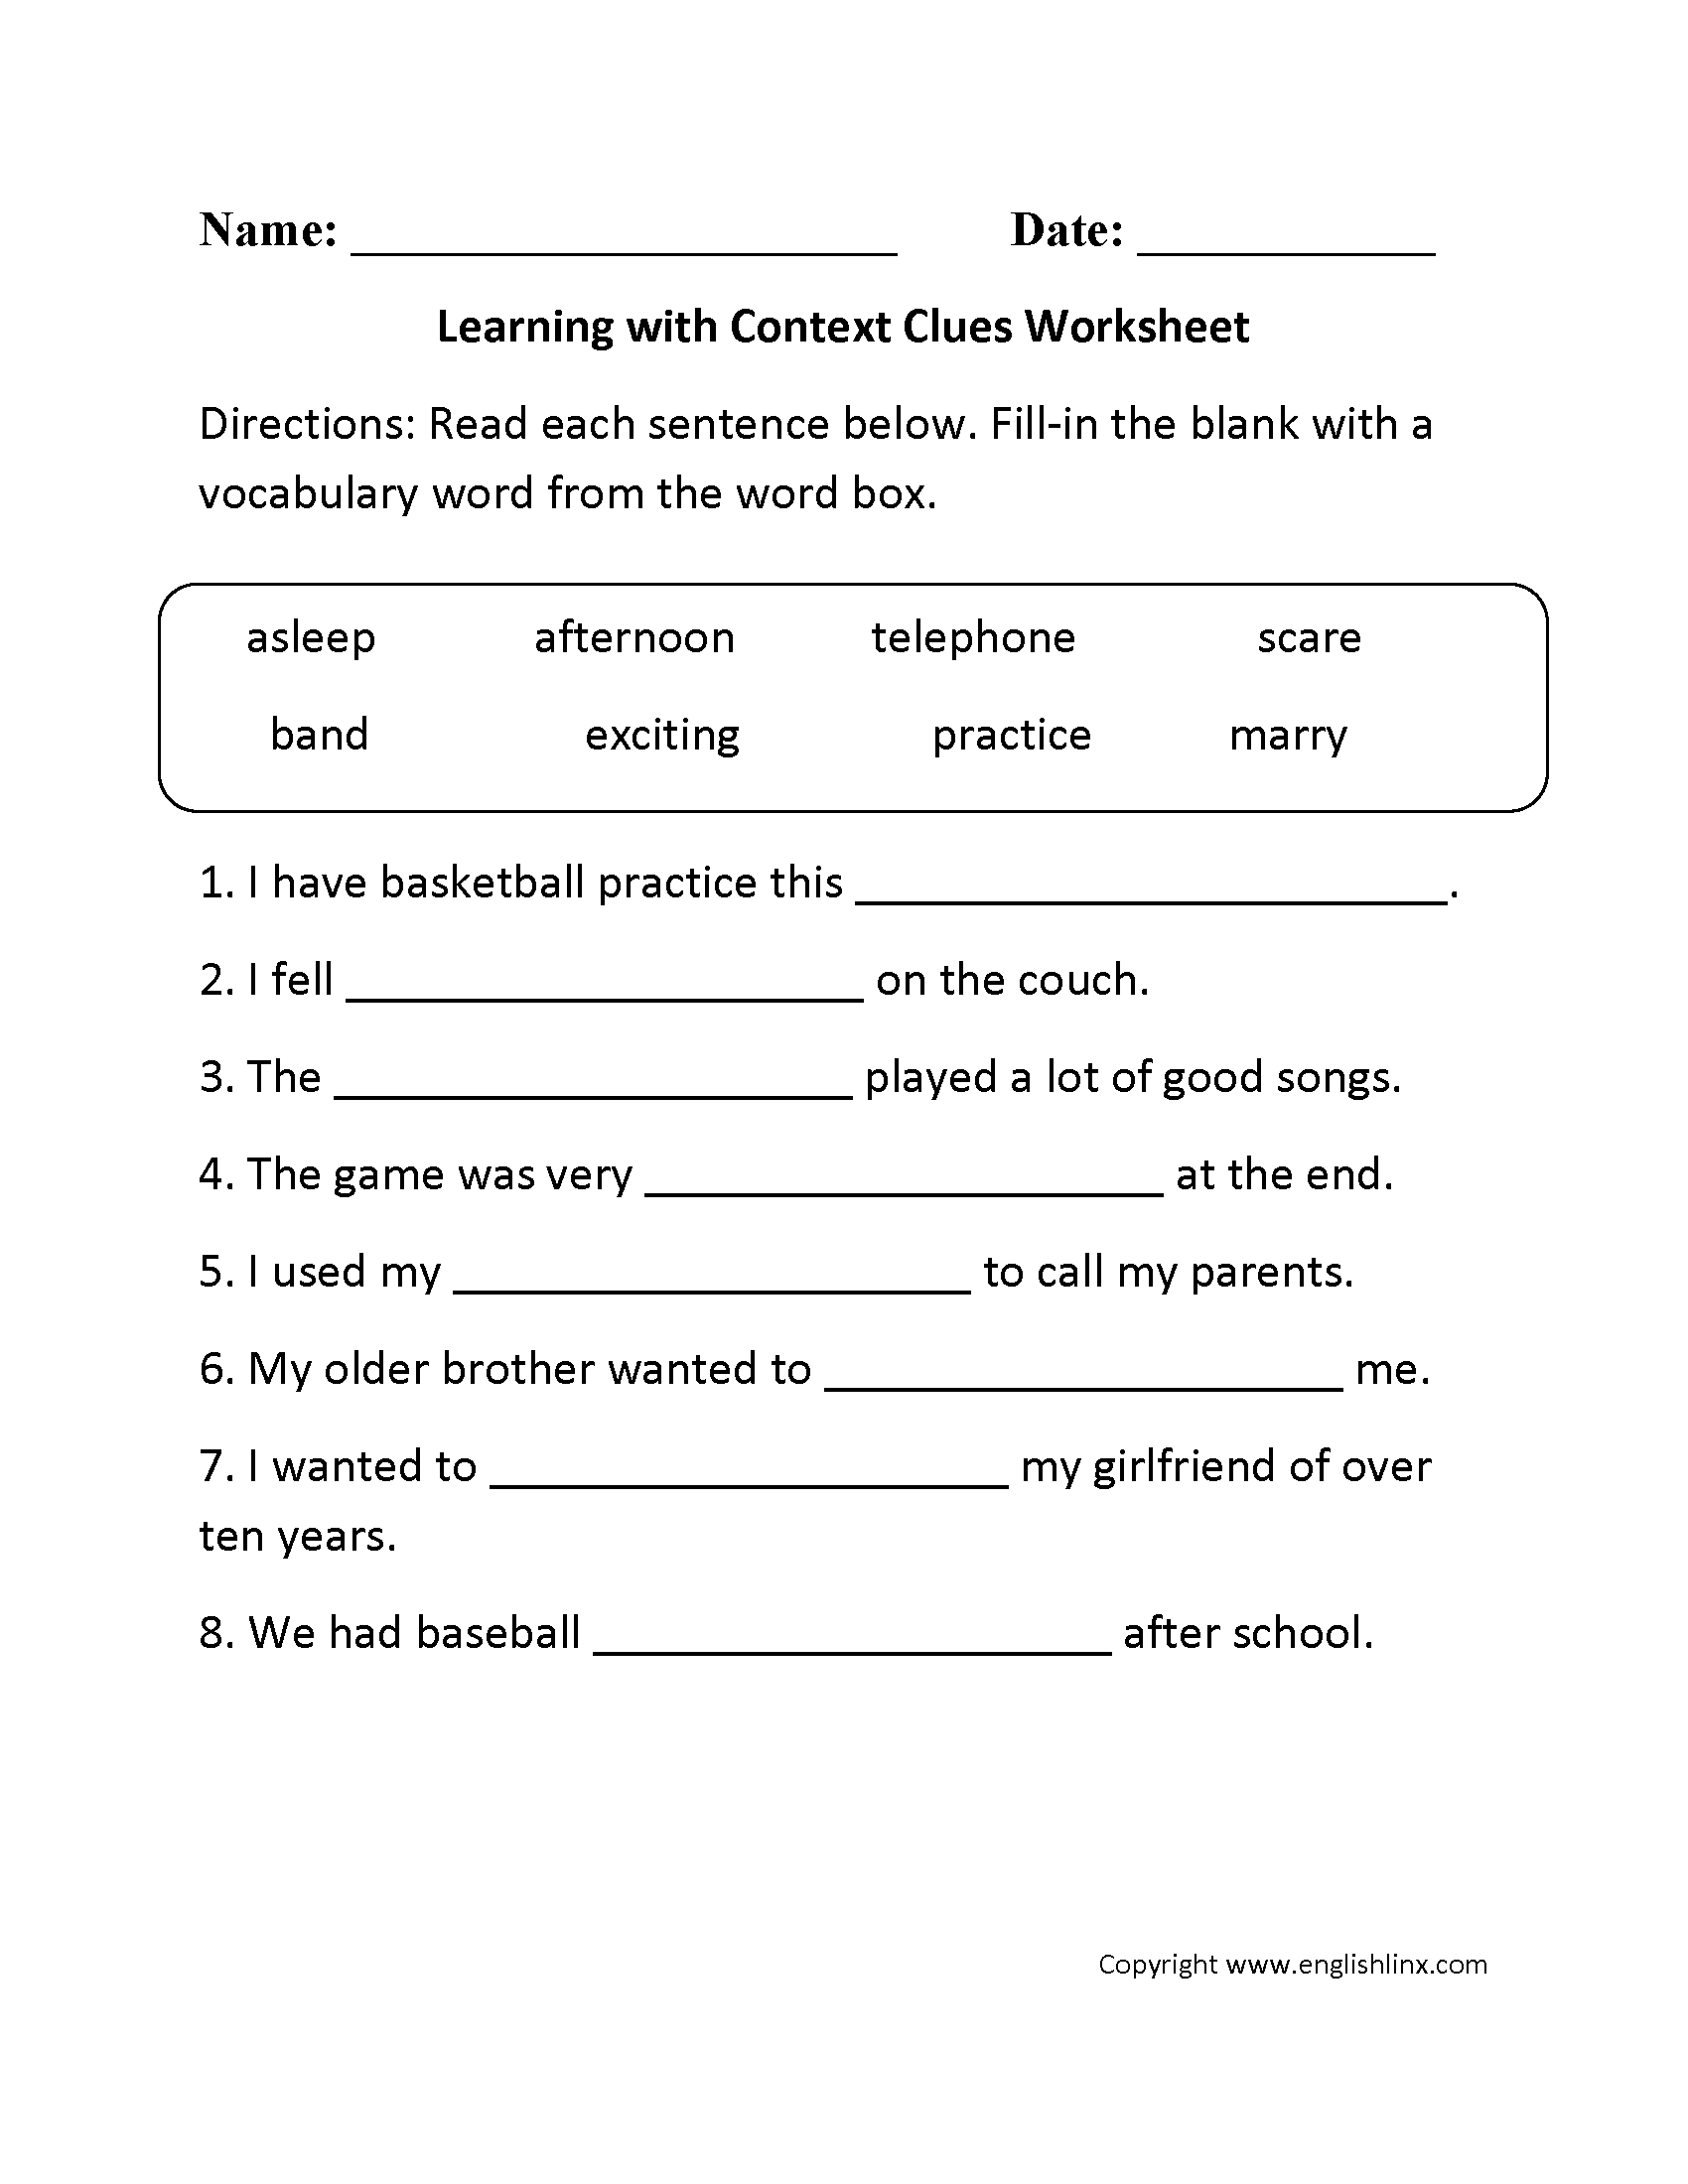 Worksheets Baseball Worksheets reading worksheets context clues worksheet